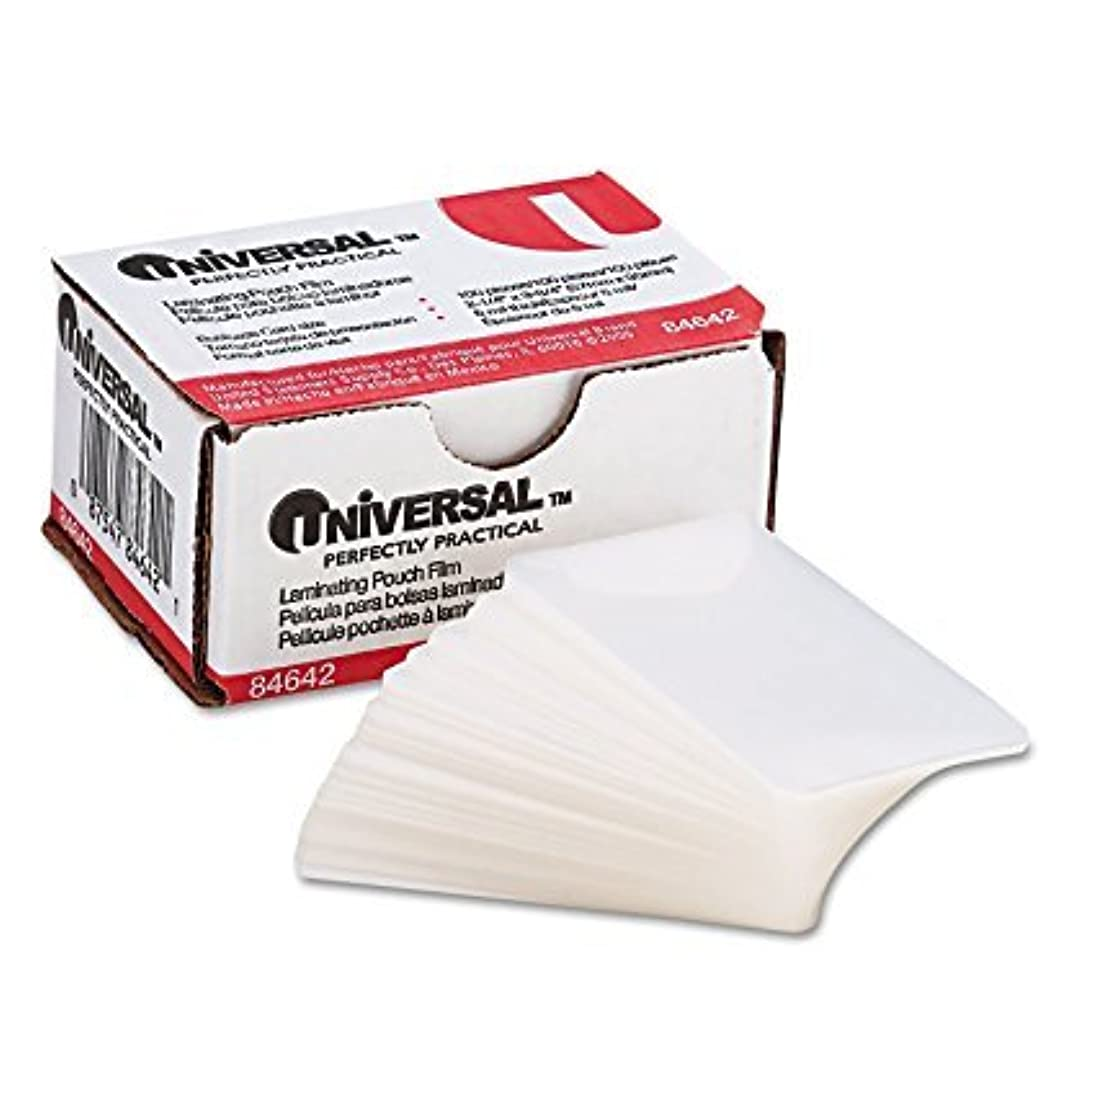 Universal UNV84642 100 per Box Clear Laminating Pouches, 2 1/4-Inch x 3 3/4-Inch - Pack-4